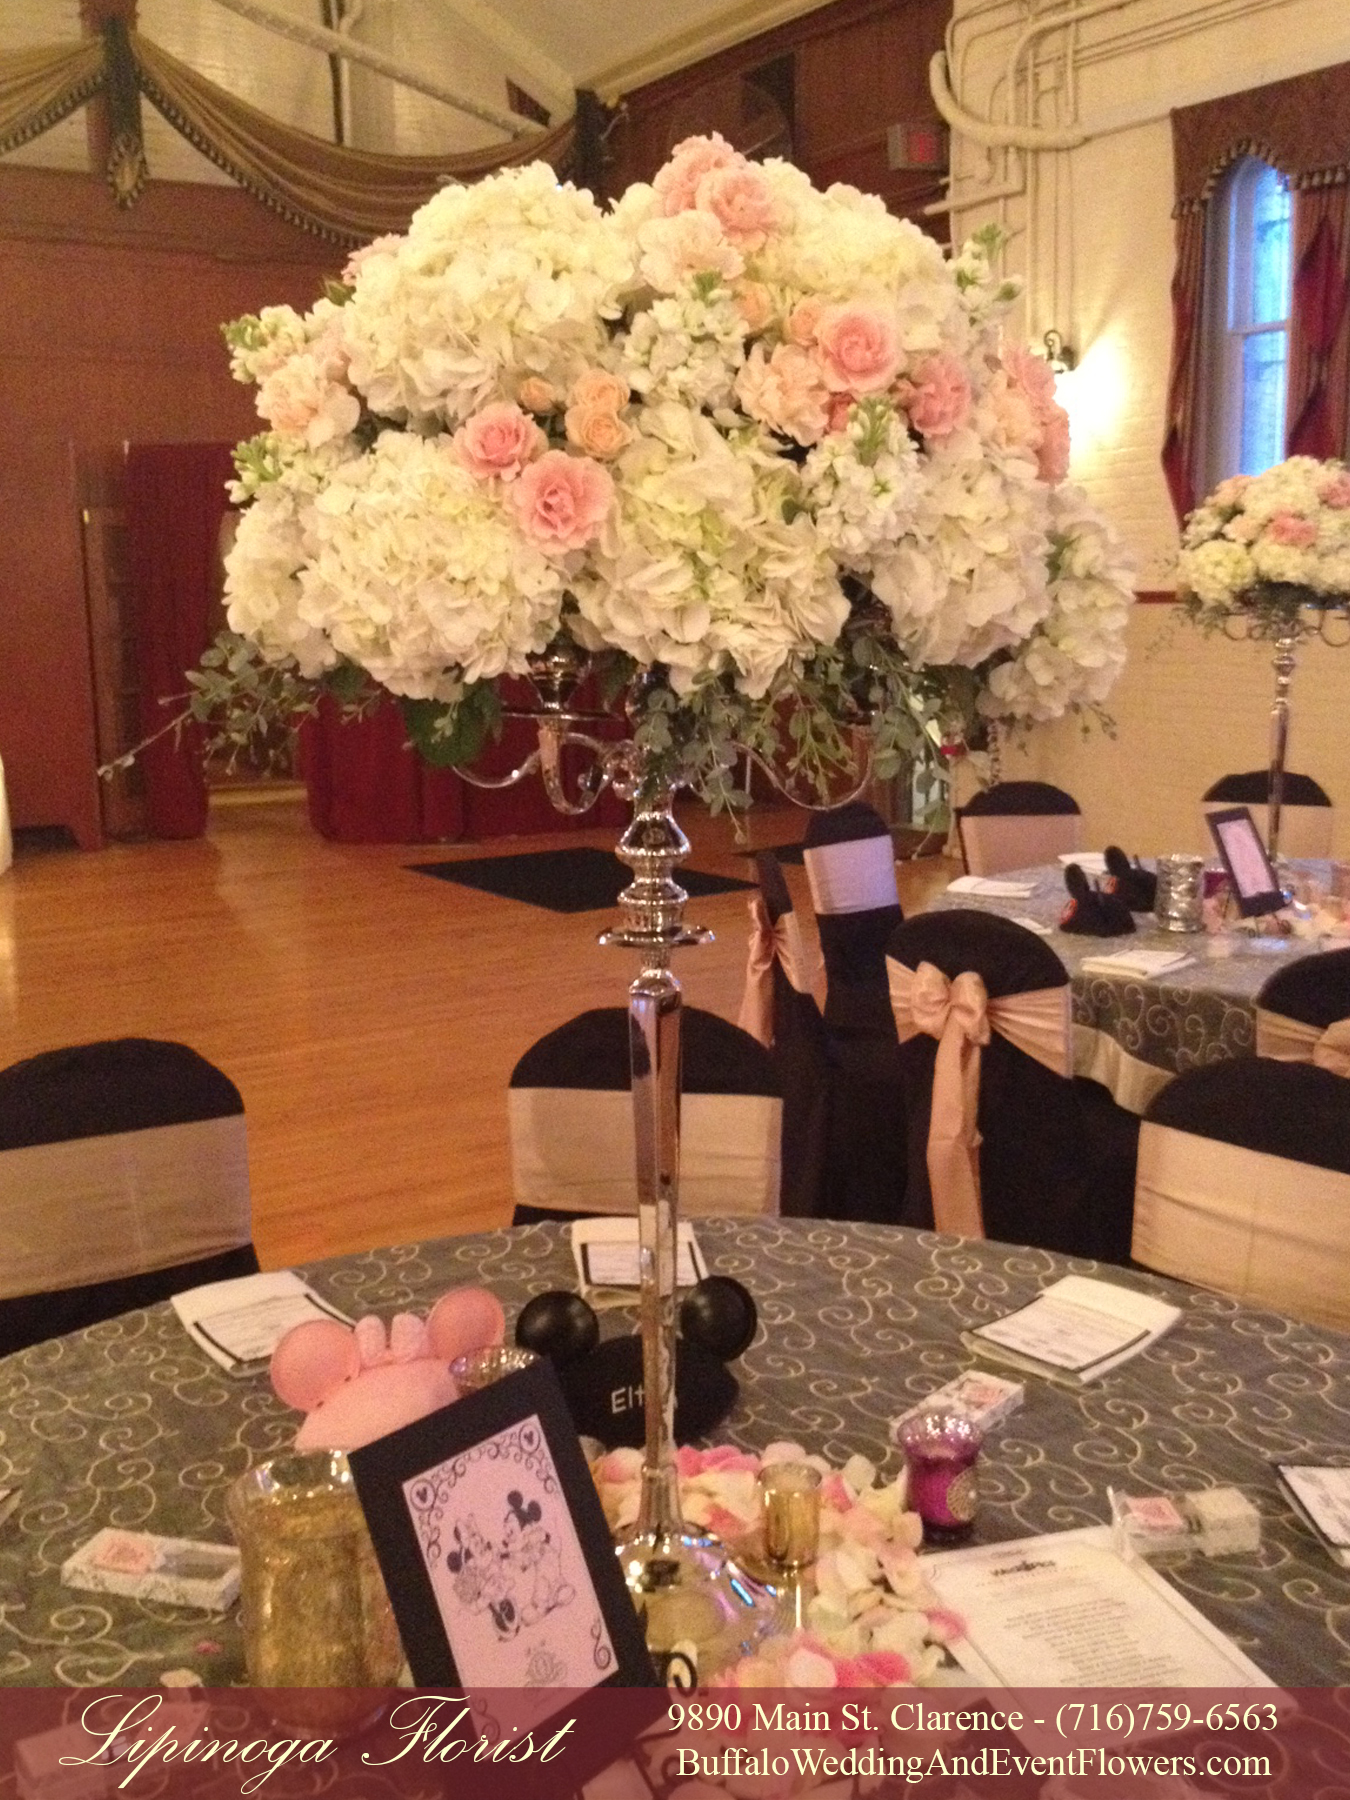 Hydrangea Buffalo Wedding Amp Event Flowers By Lipinoga